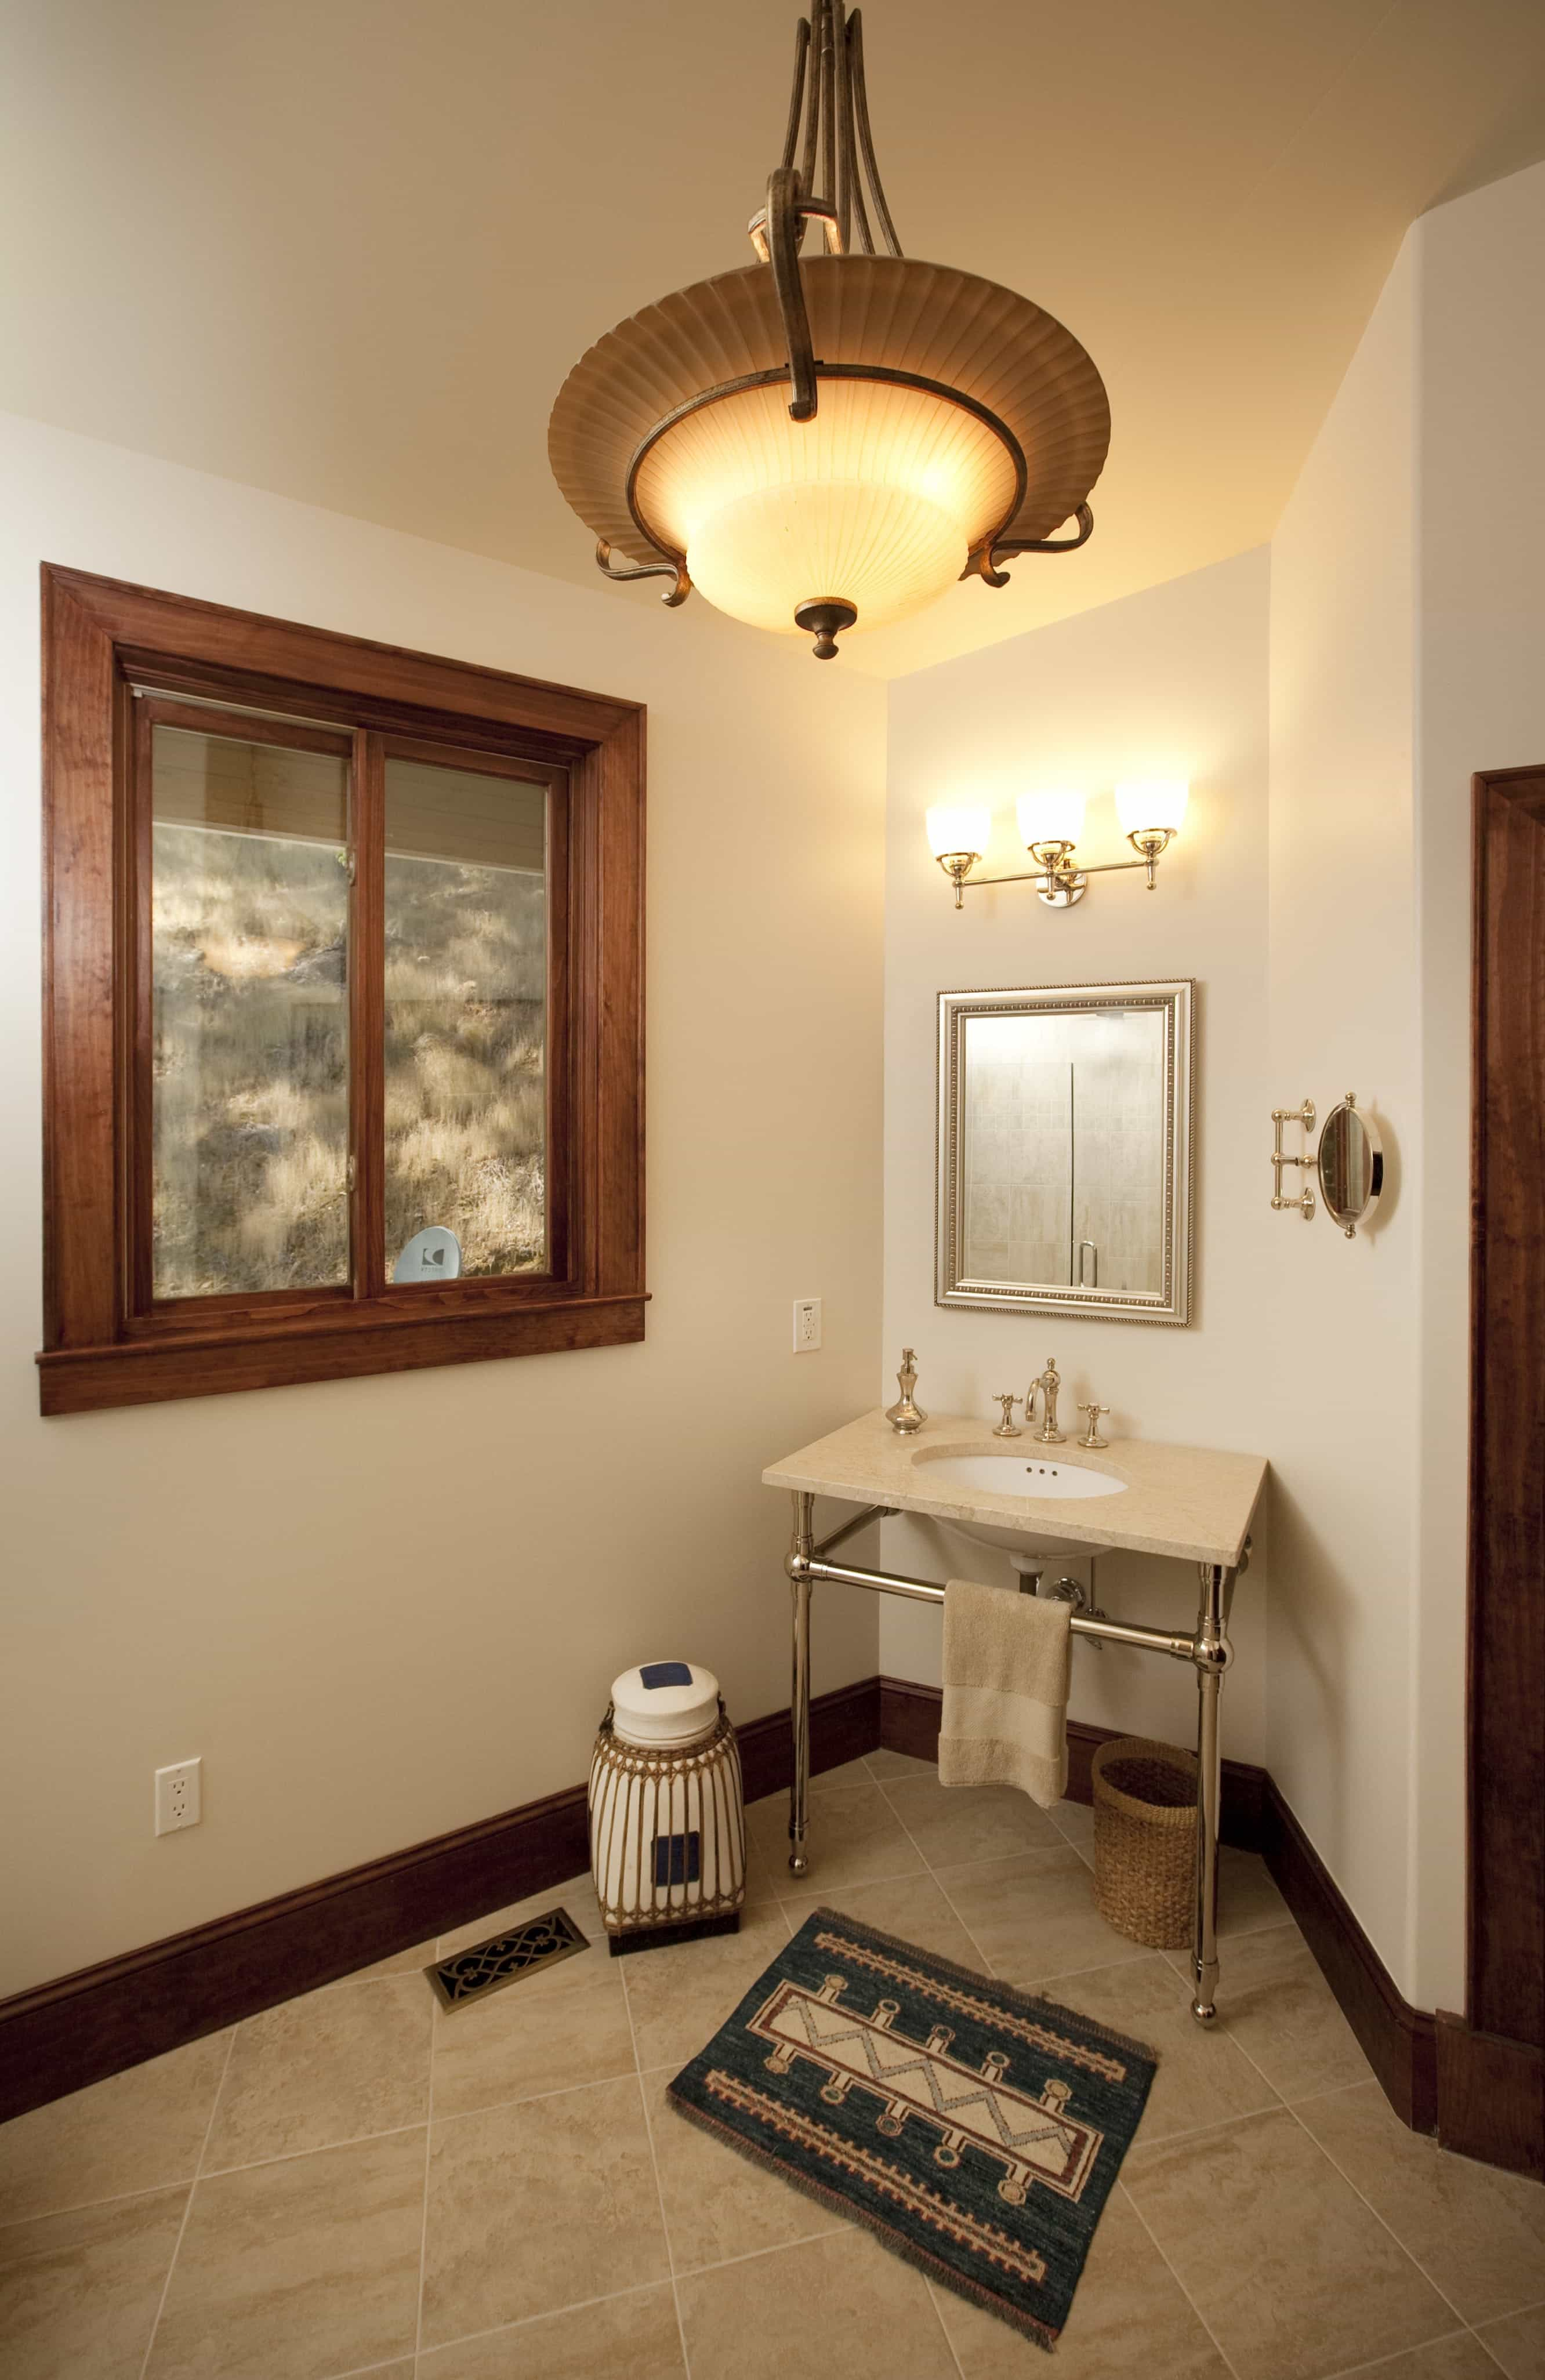 Eclectic Bathroom Mirror With Large Decorative Hanging Light (Image 10 of 20)